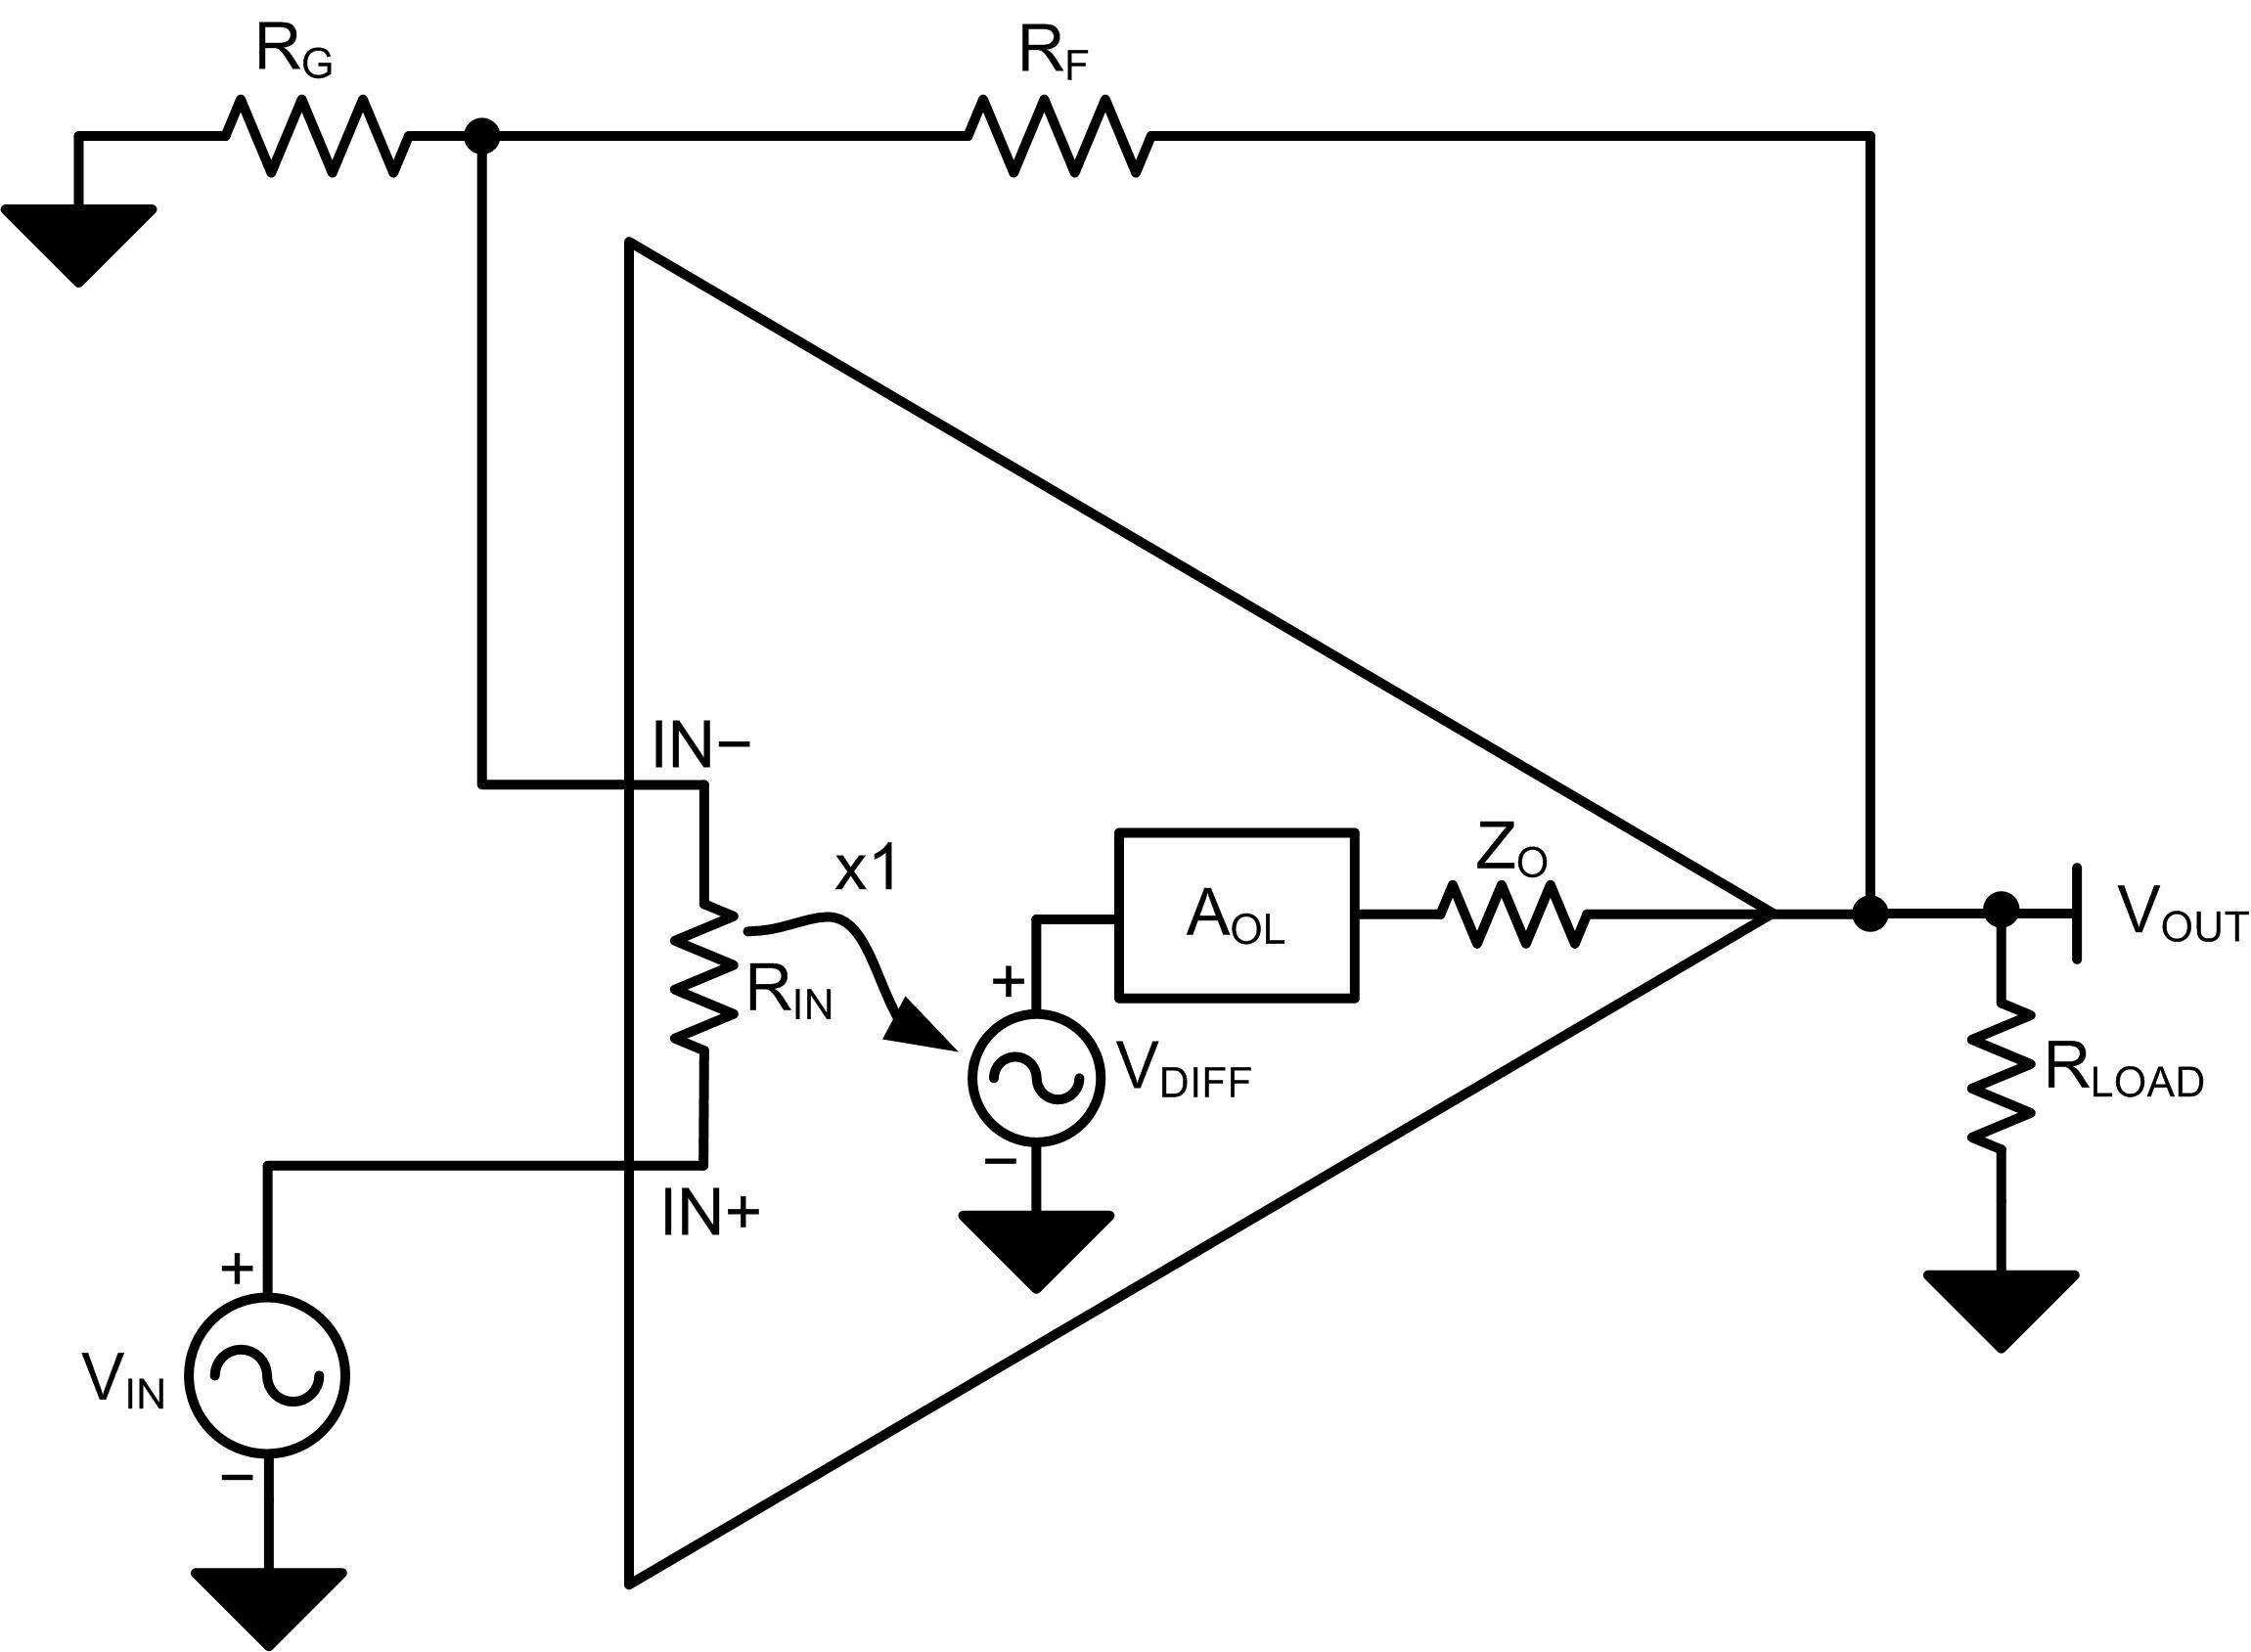 Figure 1 | Simplified small-signal op amp AC model